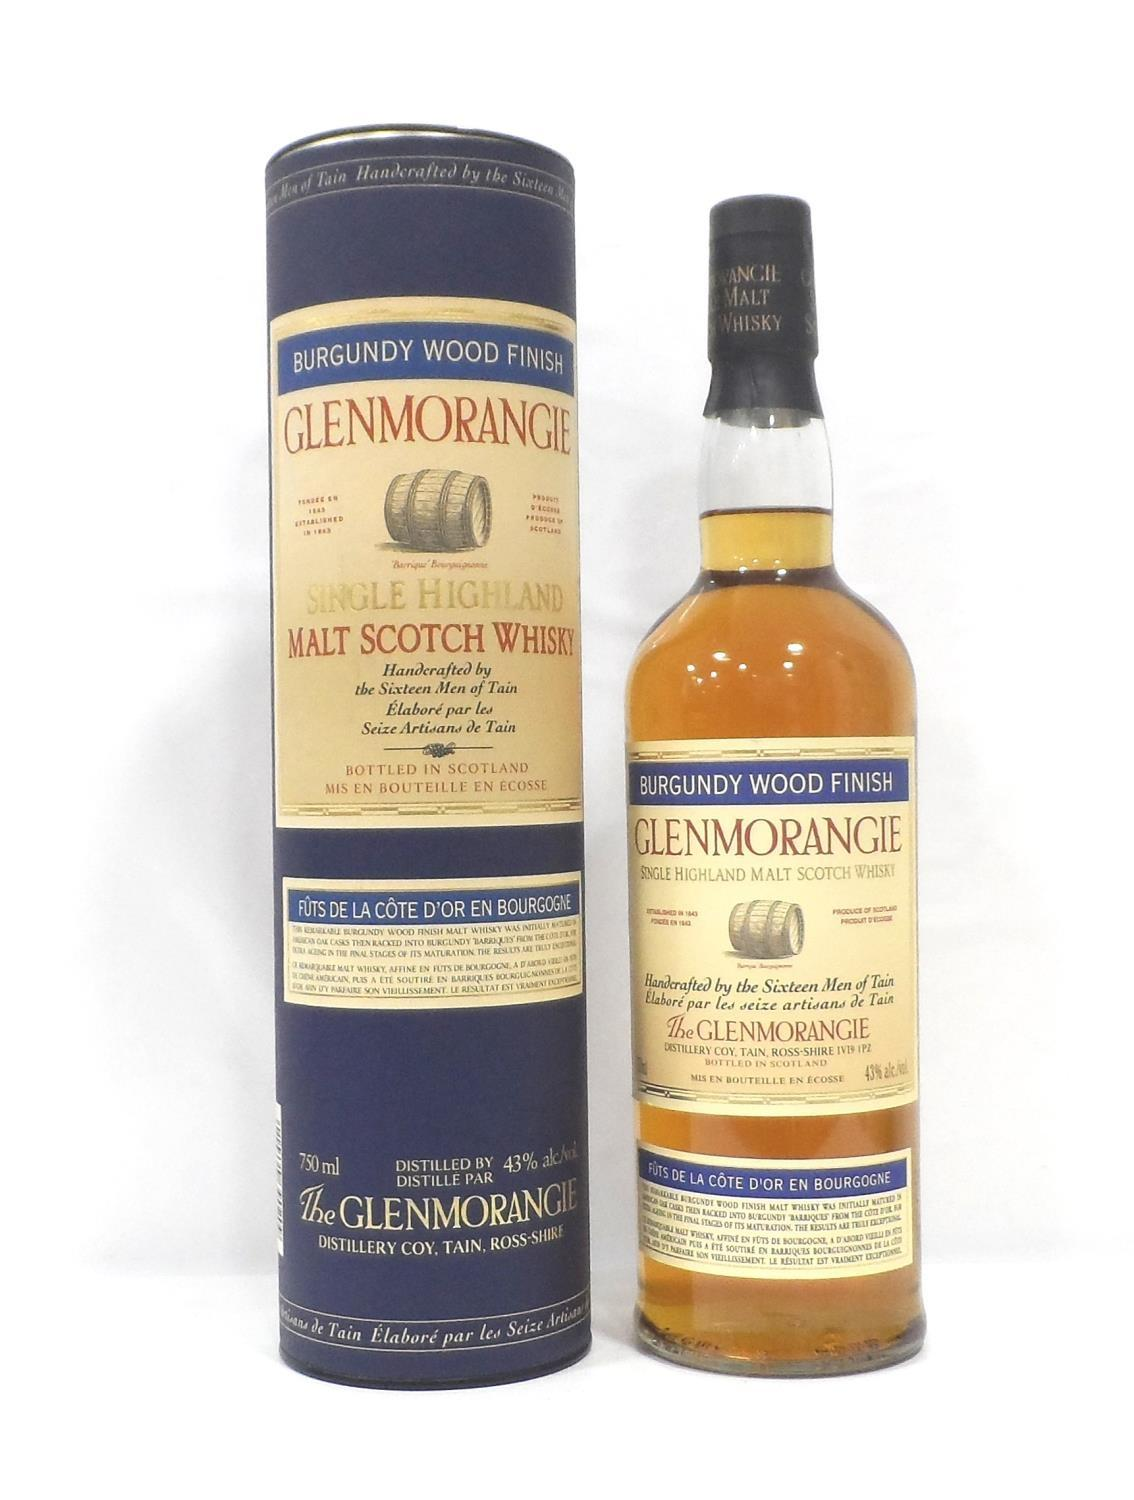 GLENMORANGIE BURGUNDY WOOD FINISH The Glenmorangie Distillery were one of the pioneers of ""